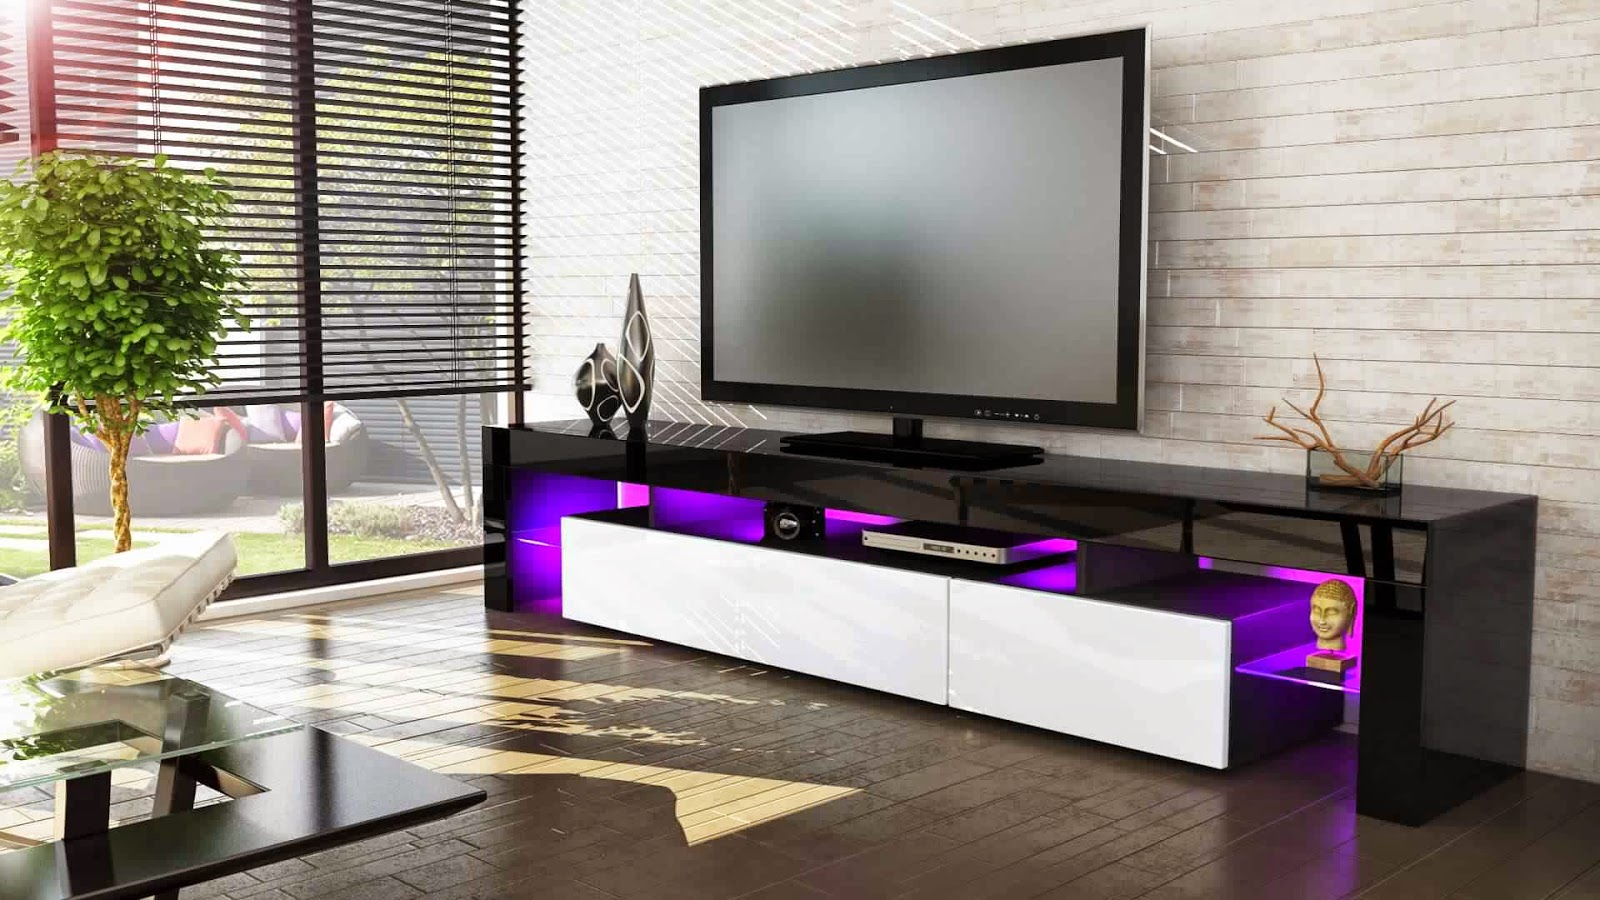 meuble tv led noir et blanc solutions pour la d coration int rieure de votre maison. Black Bedroom Furniture Sets. Home Design Ideas